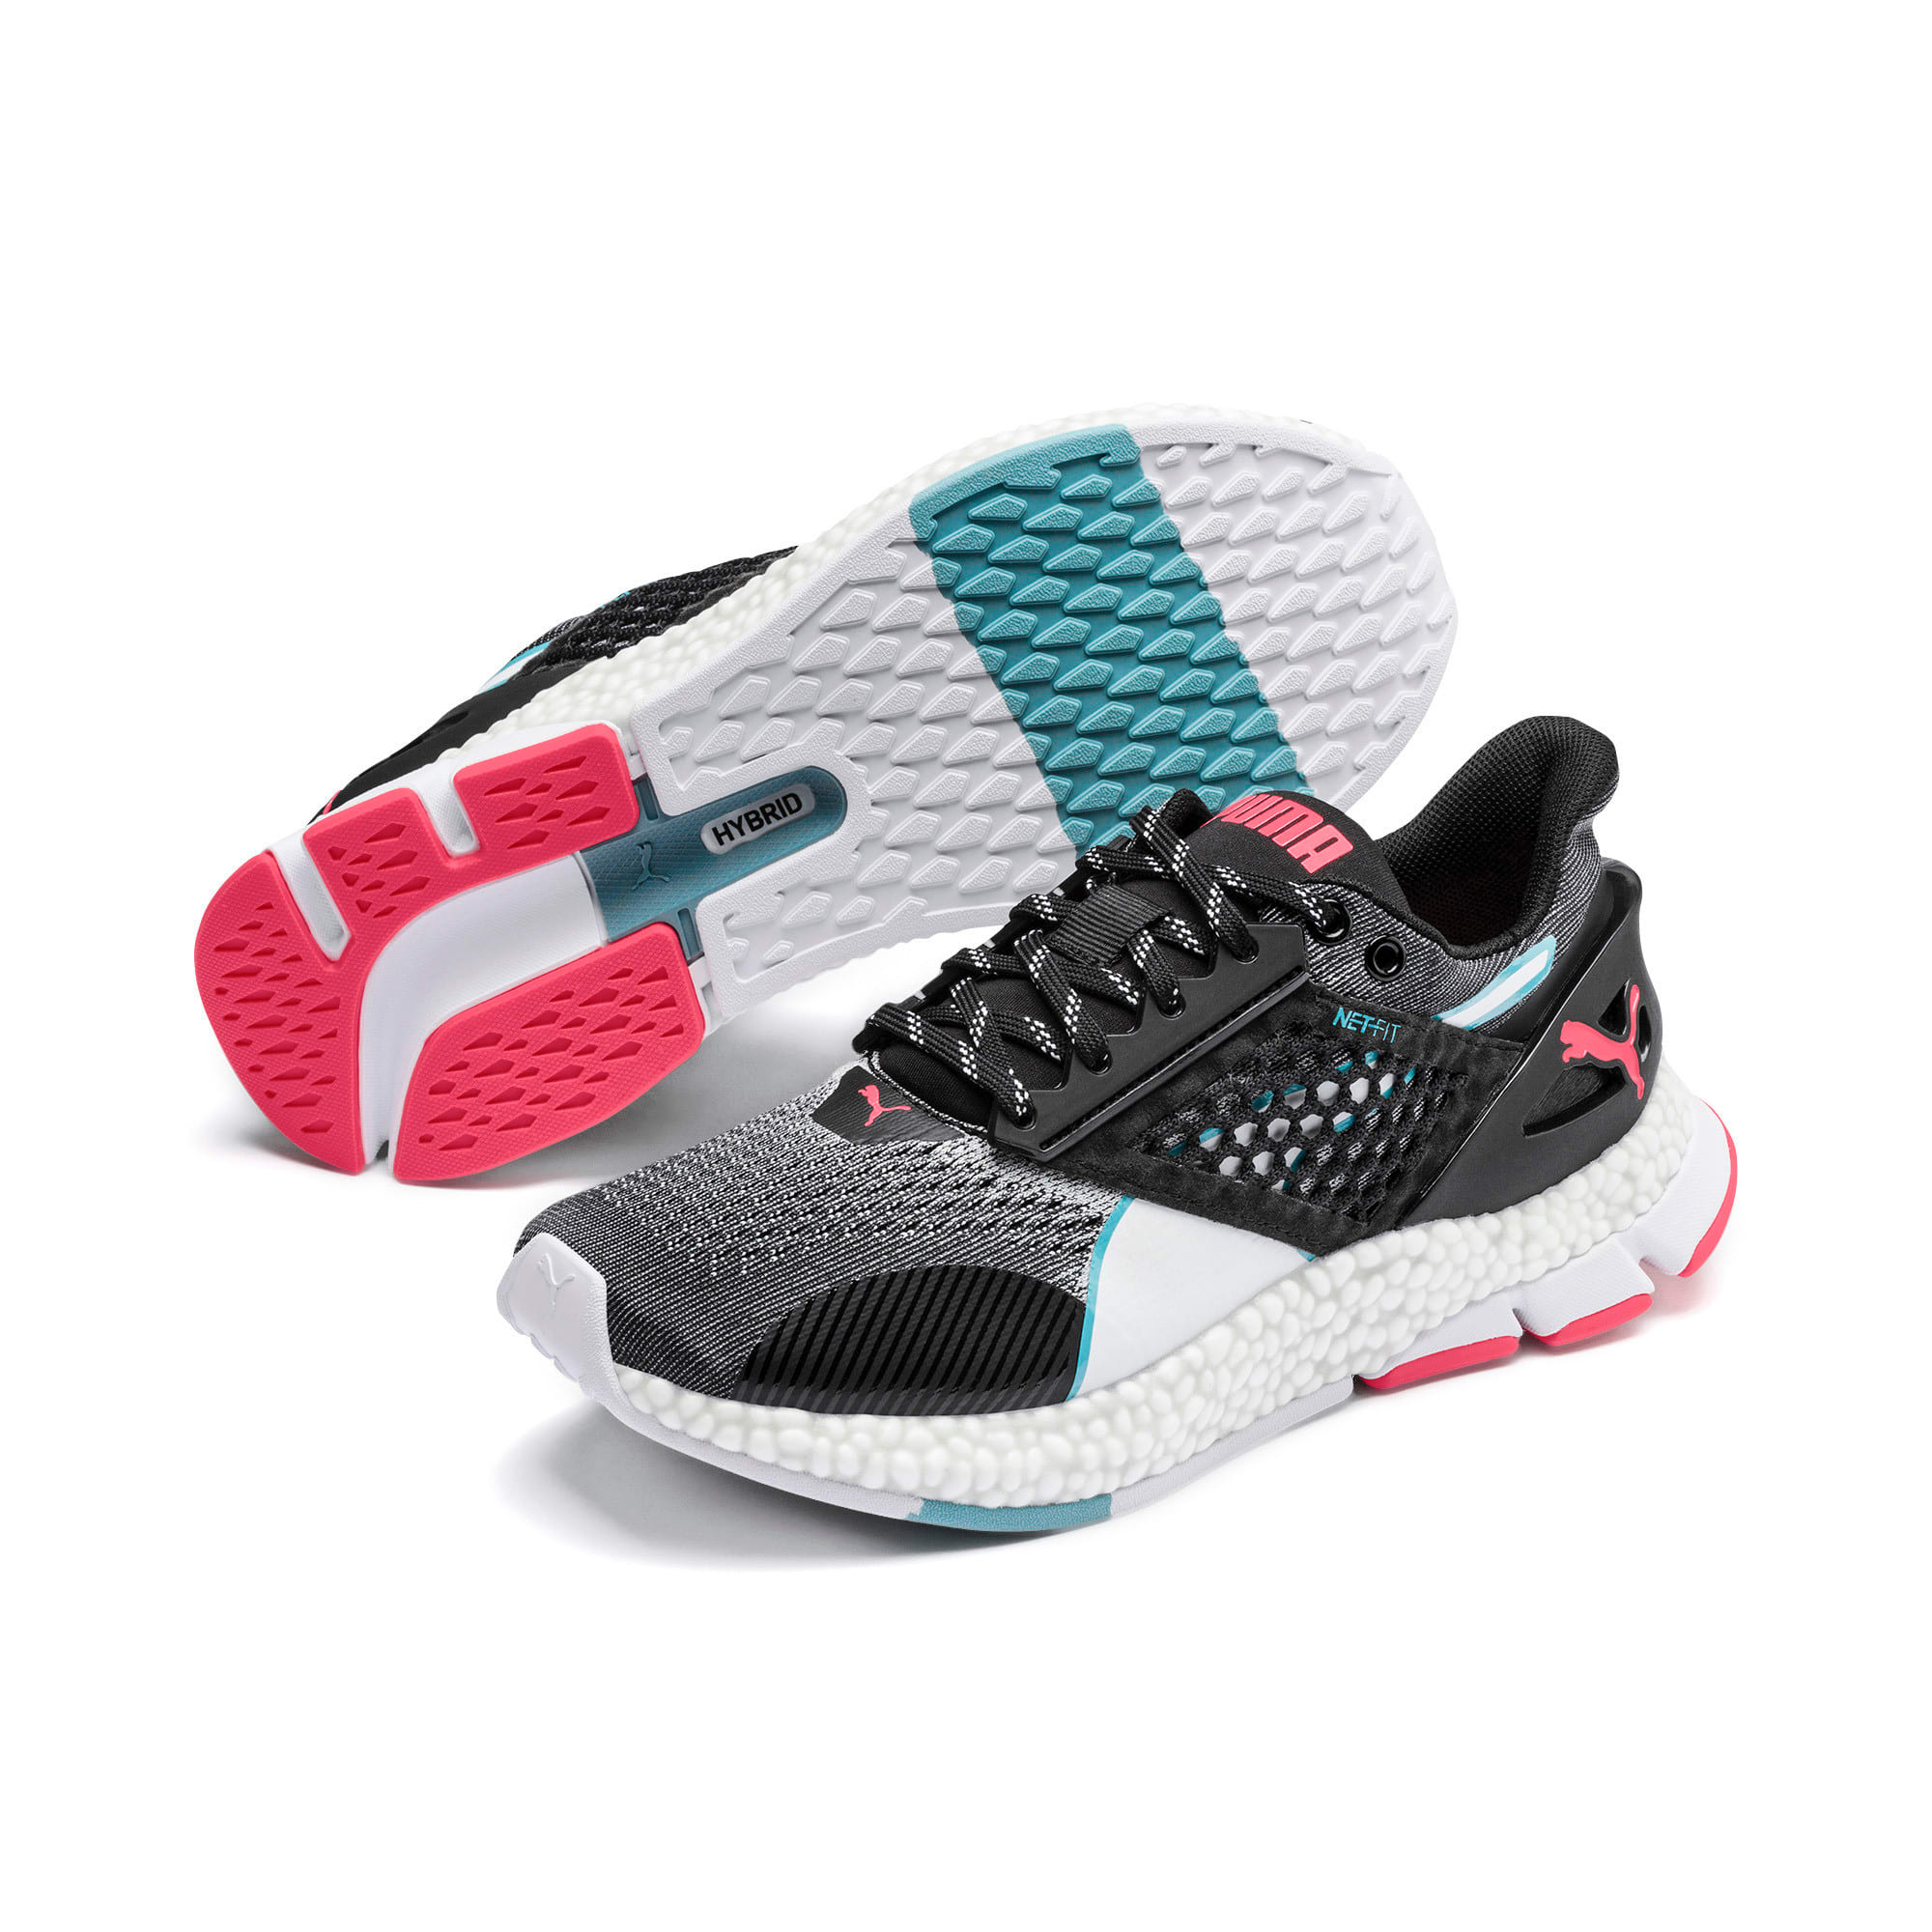 Thumbnail 3 of HYBRID NETFIT Astro Women's Running Shoes, Puma Black-Pink Alert, medium